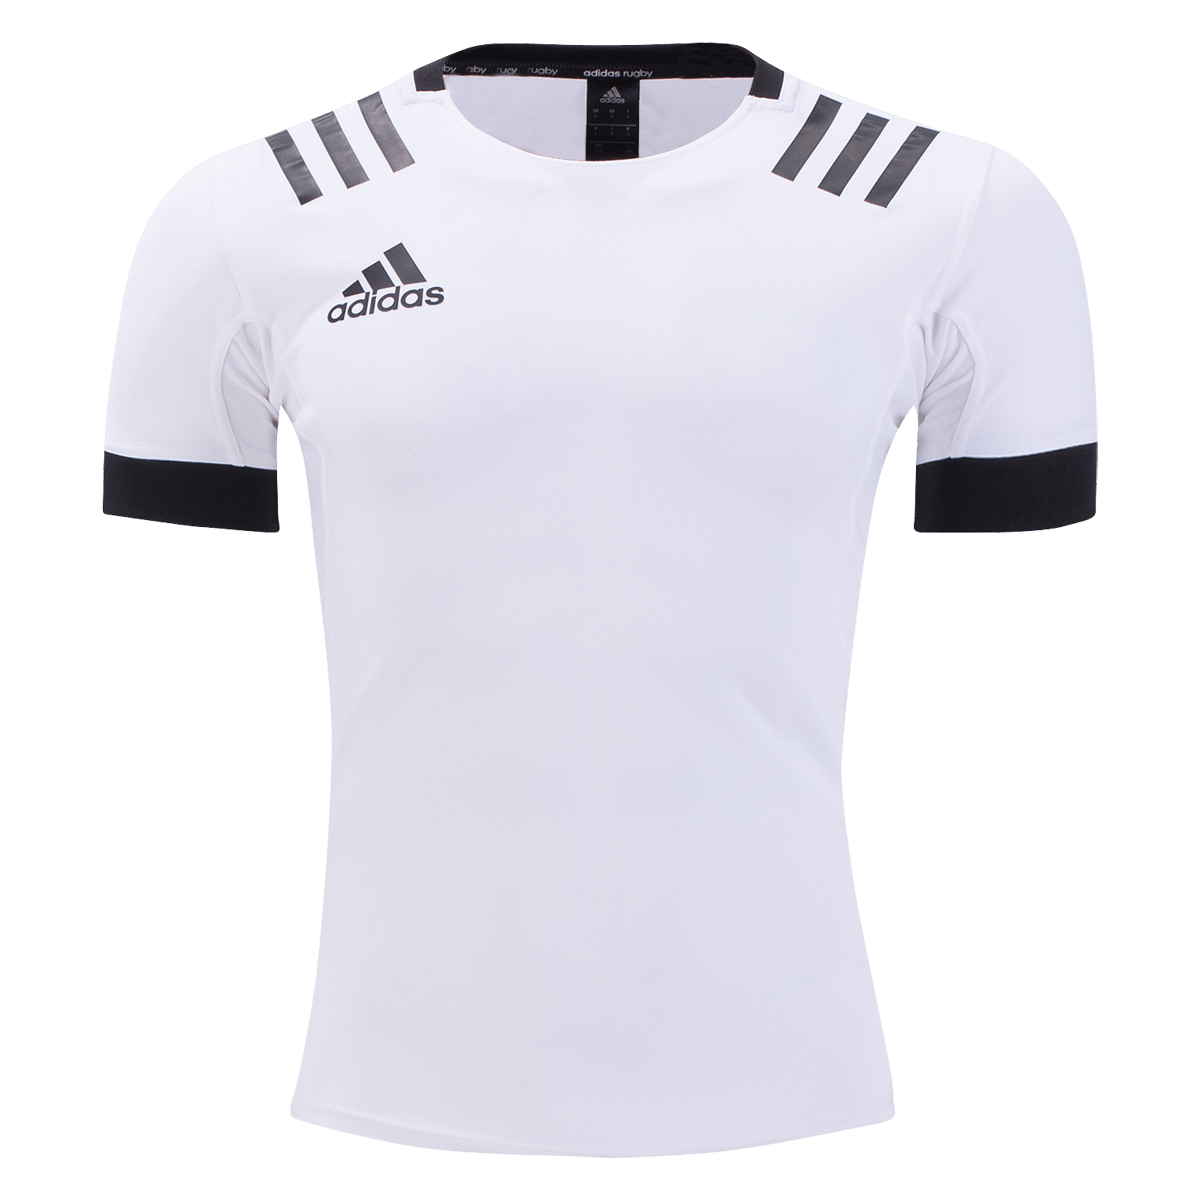 White Rugby Jersey With Black Adidas Logo, Stripes & Elastic on Sleeves